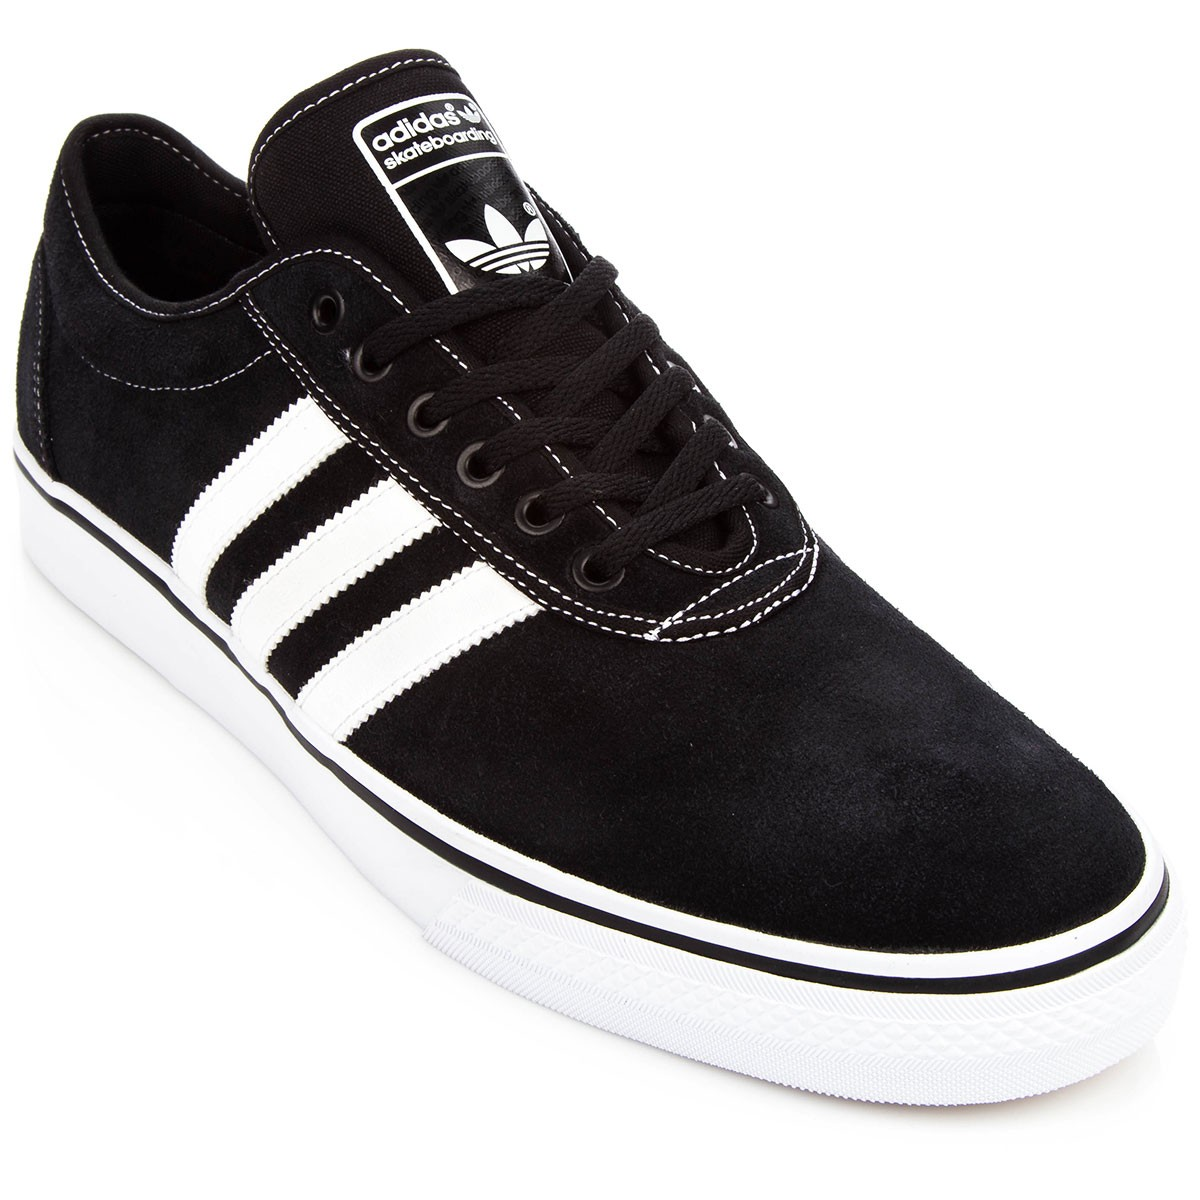 1e9b18e28dee5e Adidas Adi - Ease Shoes